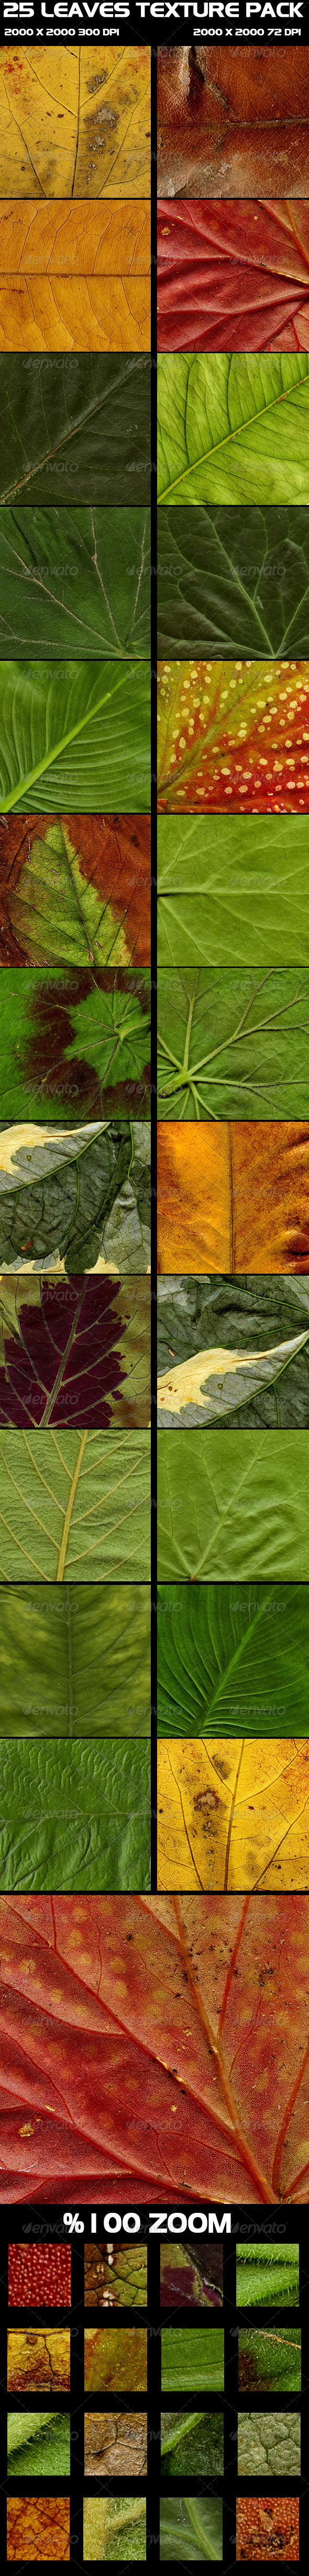 GraphicRiver 25 Leaves Texture Pack 4461262